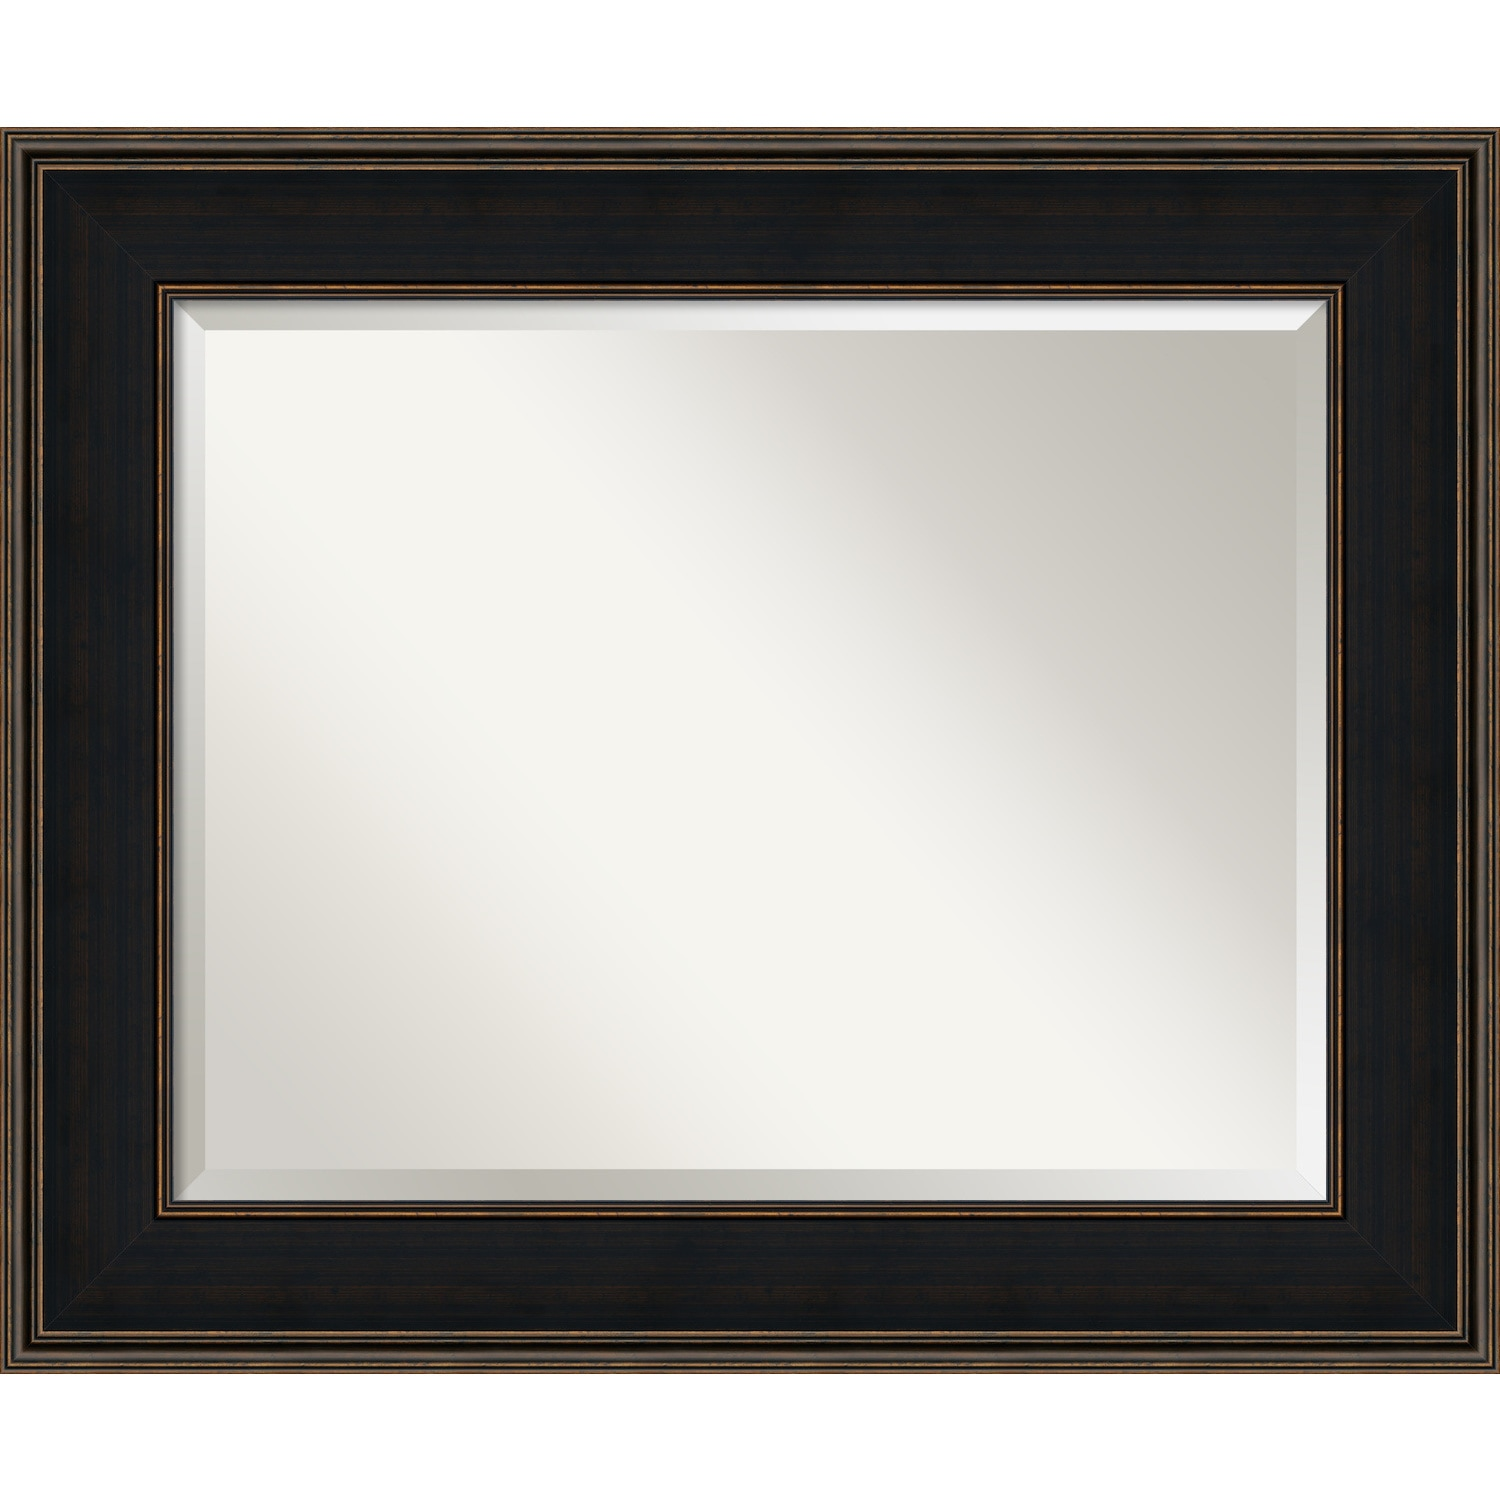 Bathroom Mirror Large Mezzanine Espresso 36 X 30 Inch Free Shipping Today 15341176